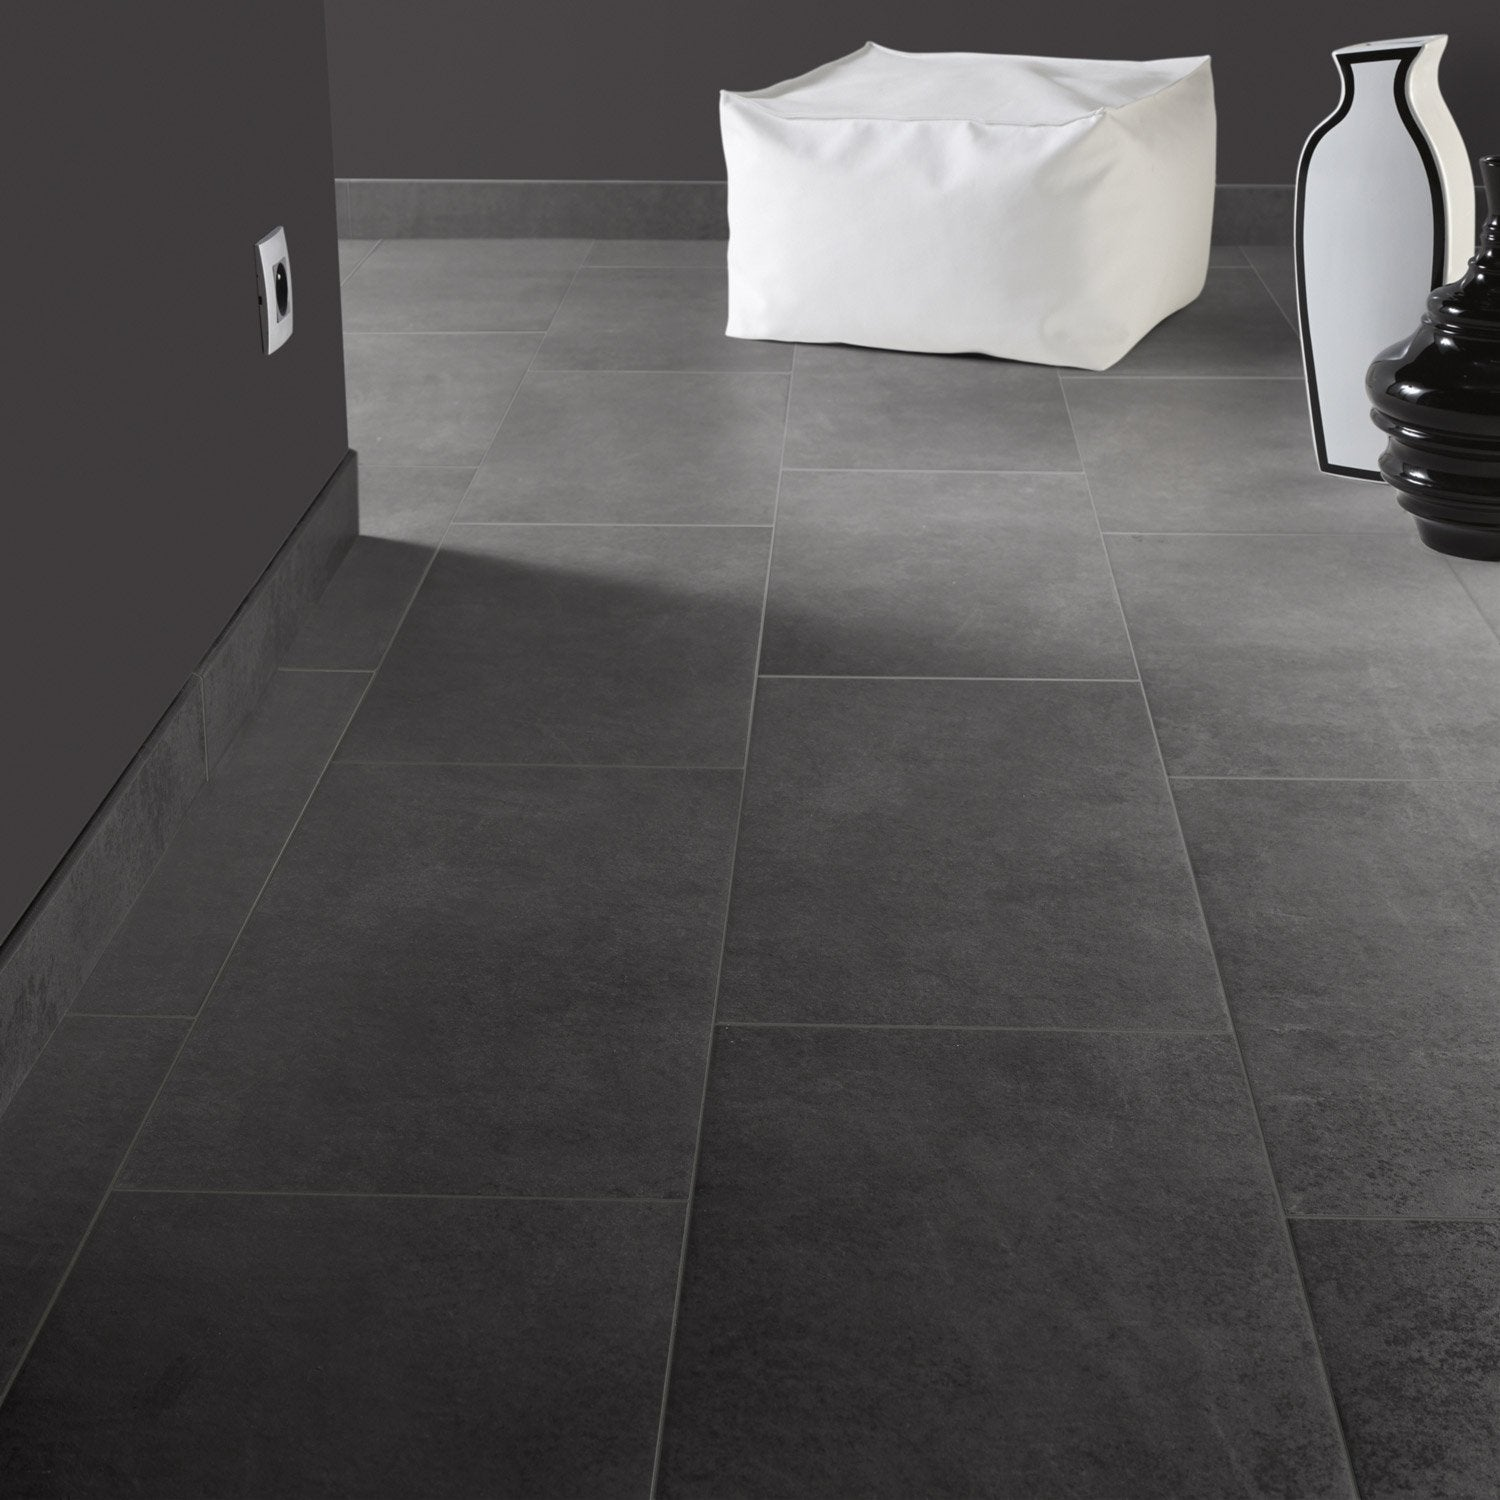 Best carrelage gris anthracite brillant with carrelage for Carrelage interieur gris anthracite